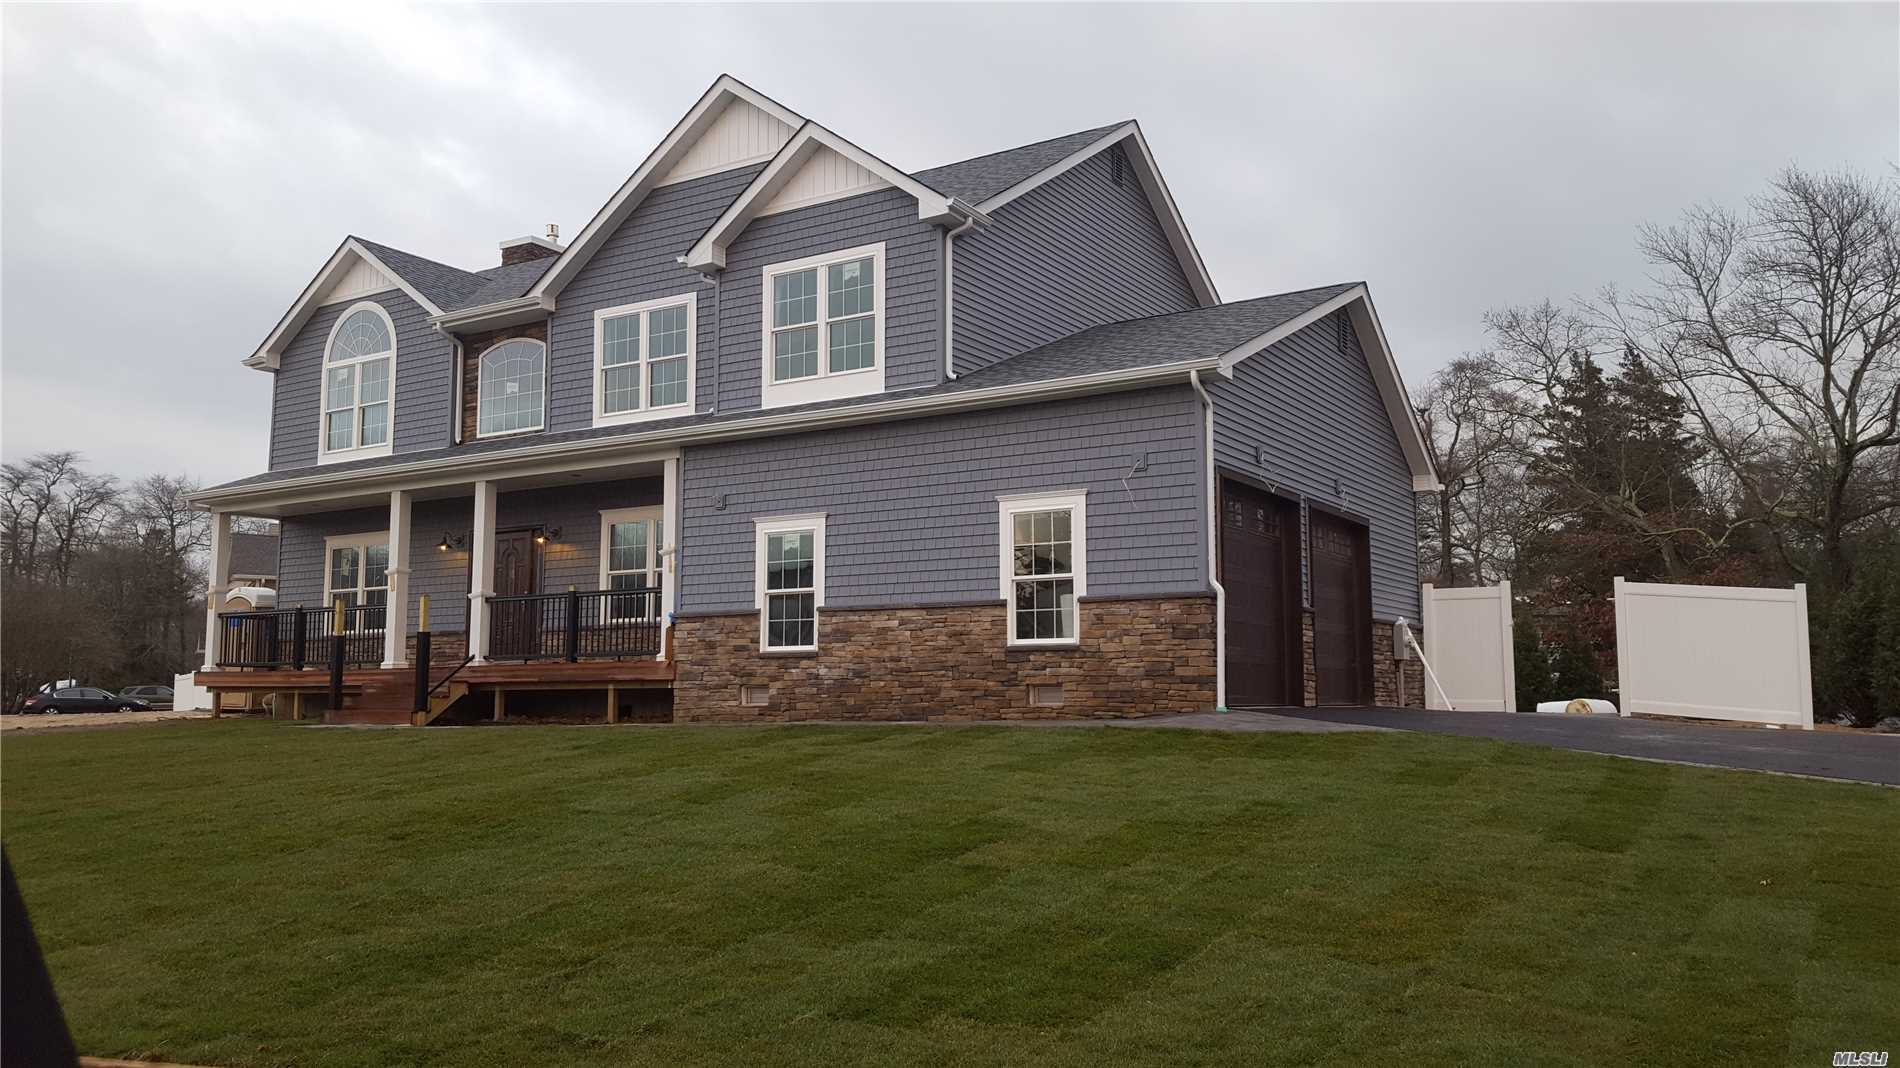 New Construction Home 4Br, 3Bath, Wood Floors Through-Out, Amazing Water-Views, Gas Fireplace, Half Acre Estate W/ 14Ft Leyland Cypress + 6Ft Pvc Surrounding Property, Attached Side-Entry 2 Car Garage. Low Flood Insurance(+/-$500/Year)